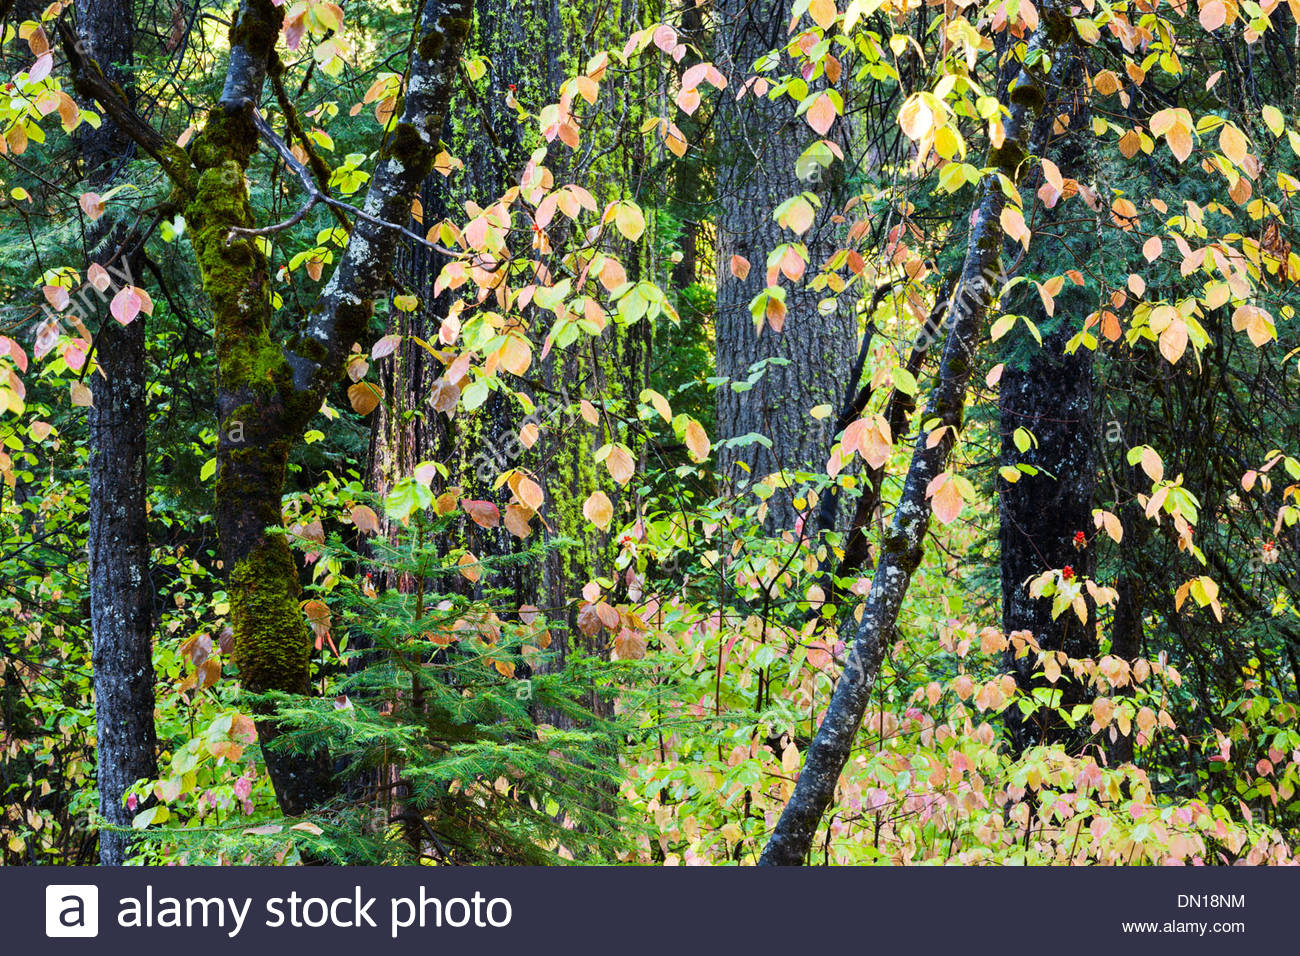 Calaveras Big Trees Stock Photos & Calaveras Big Trees Stock Images ...